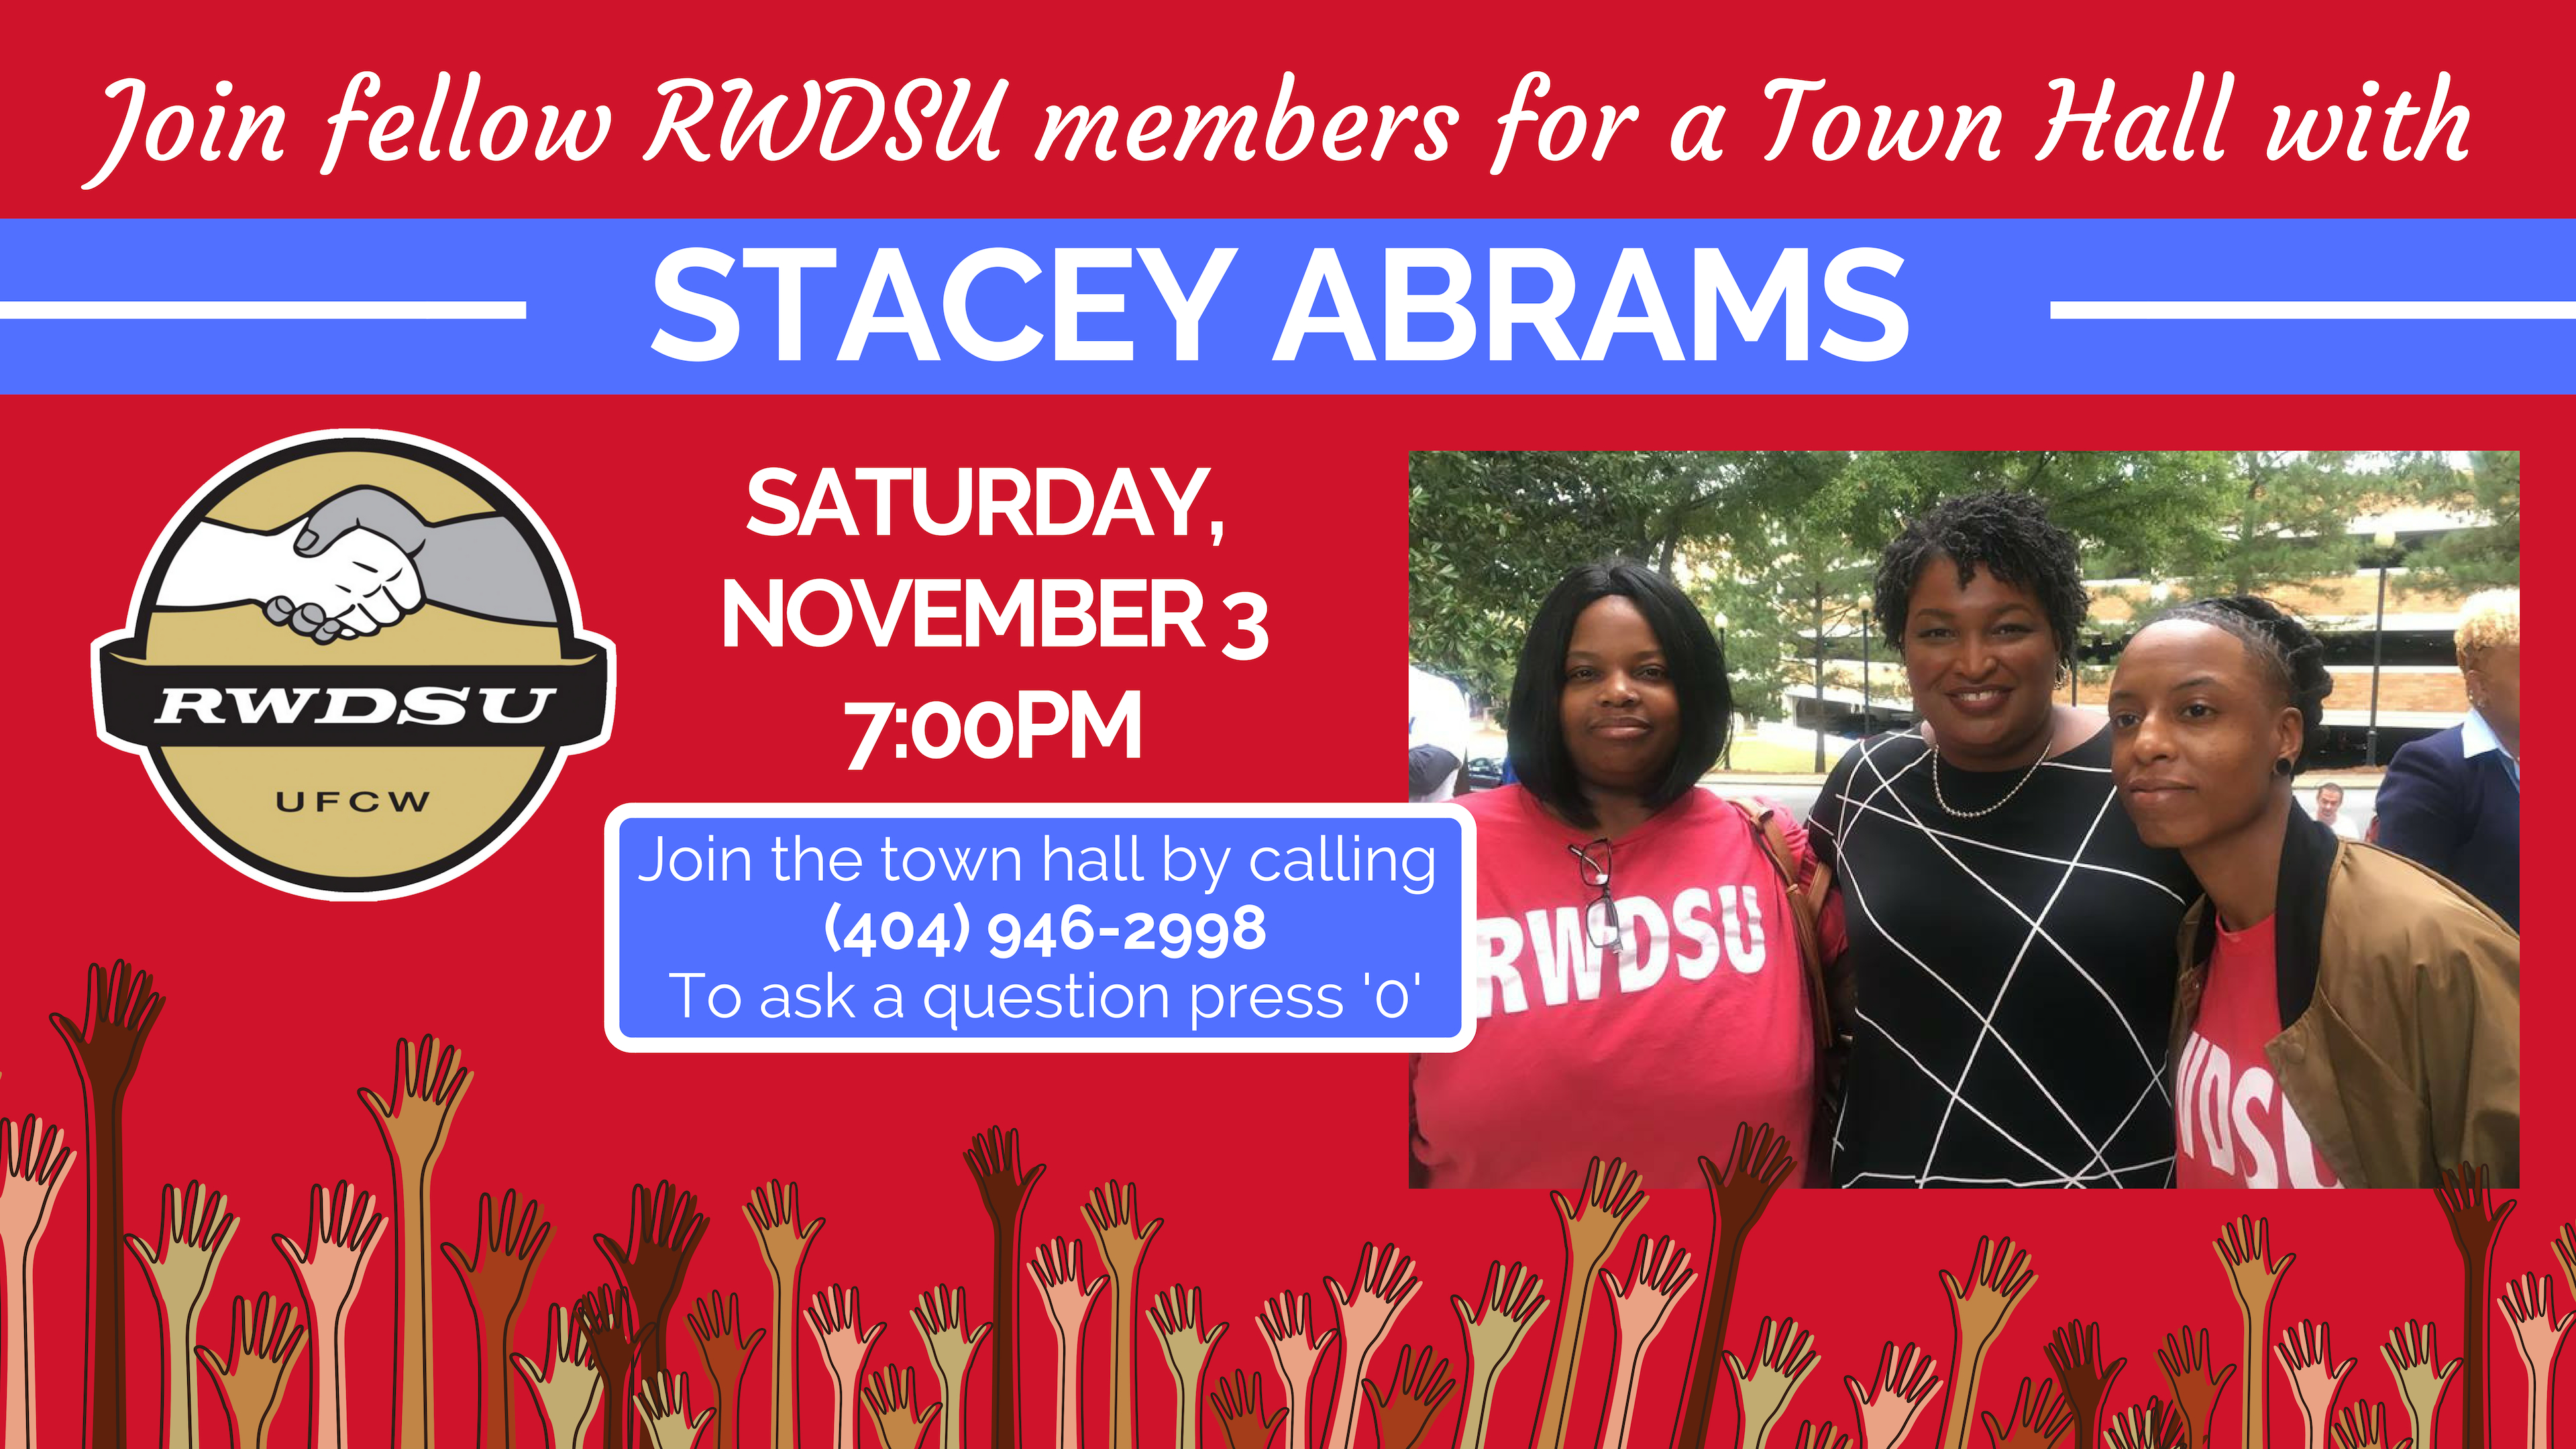 Town_Hall_with_Stacey_Abrams_Facebook_Event_Image.jpg